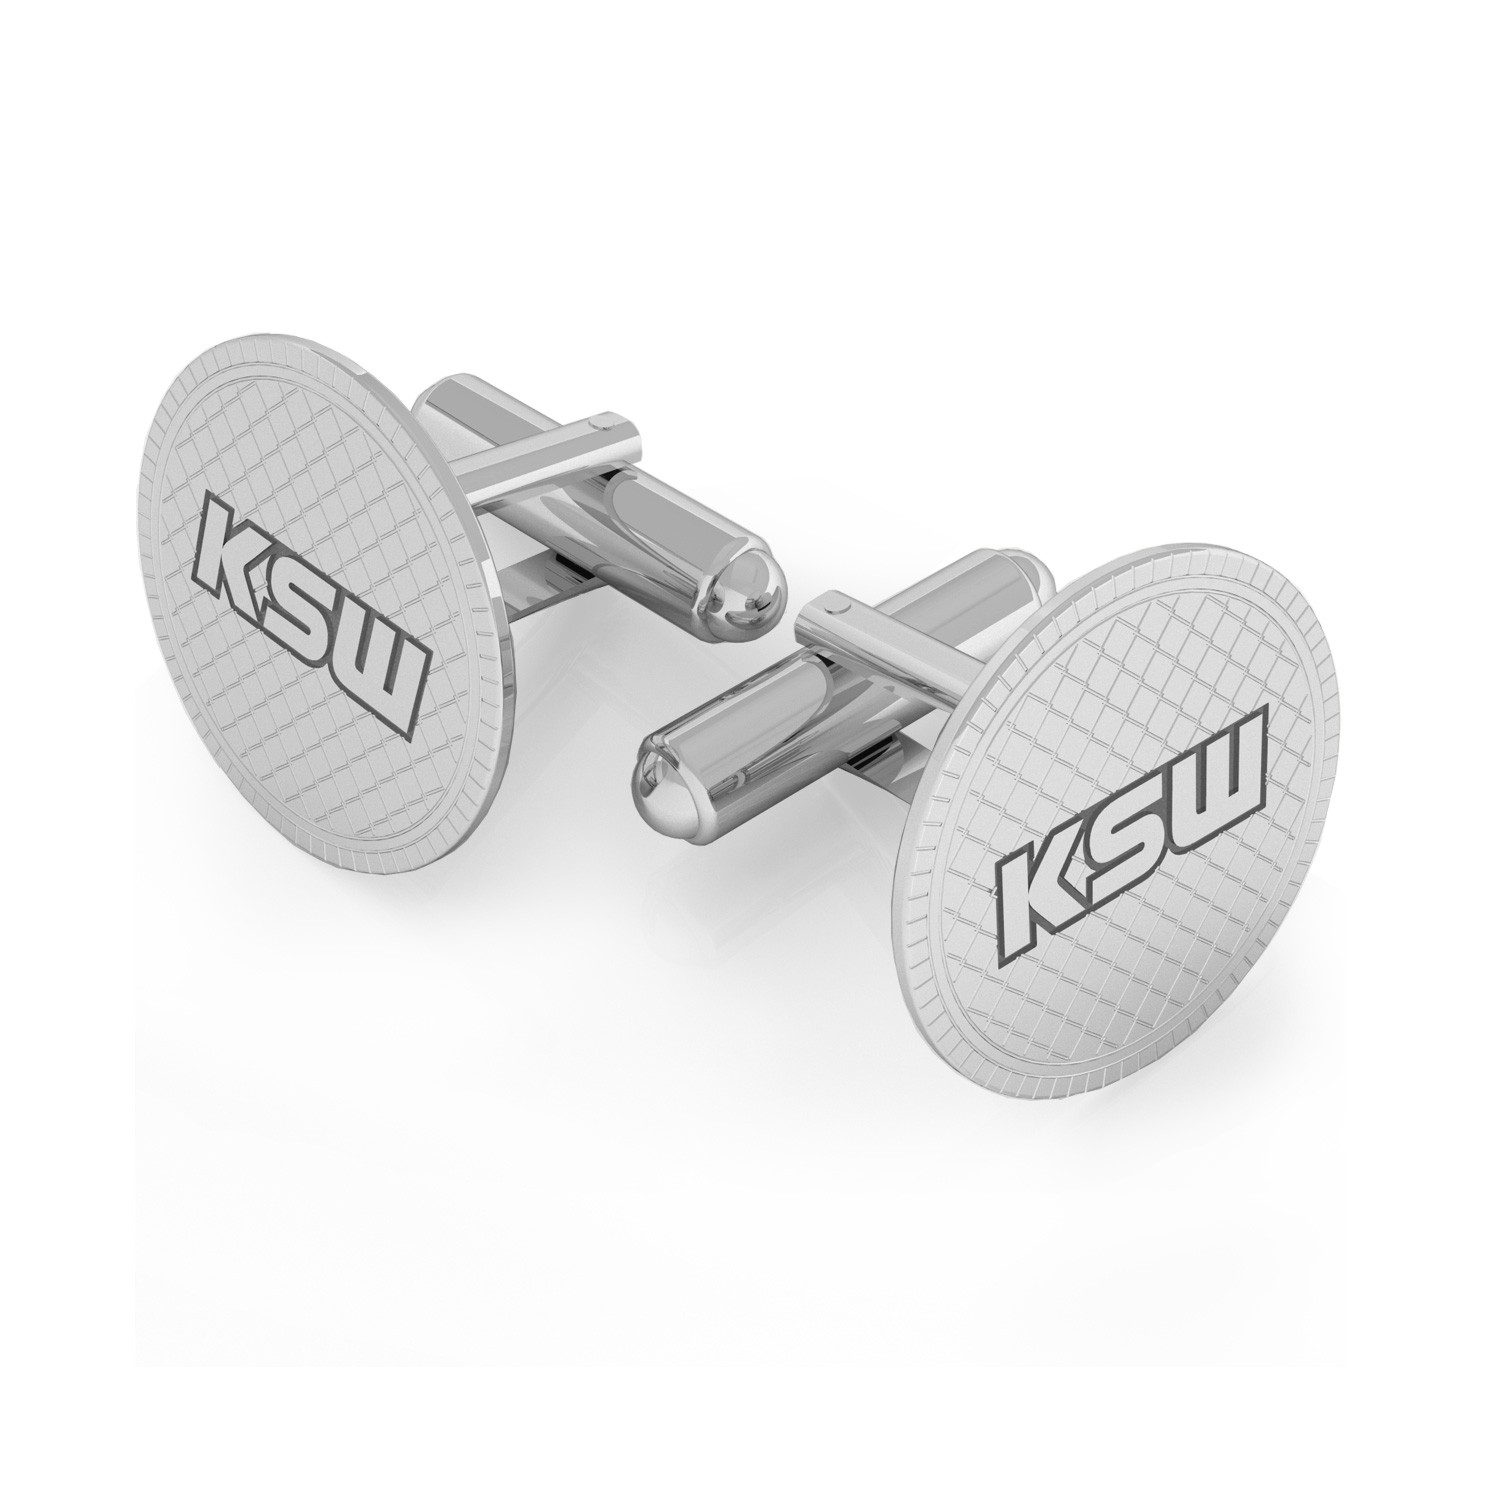 Square cufflinks with engrave